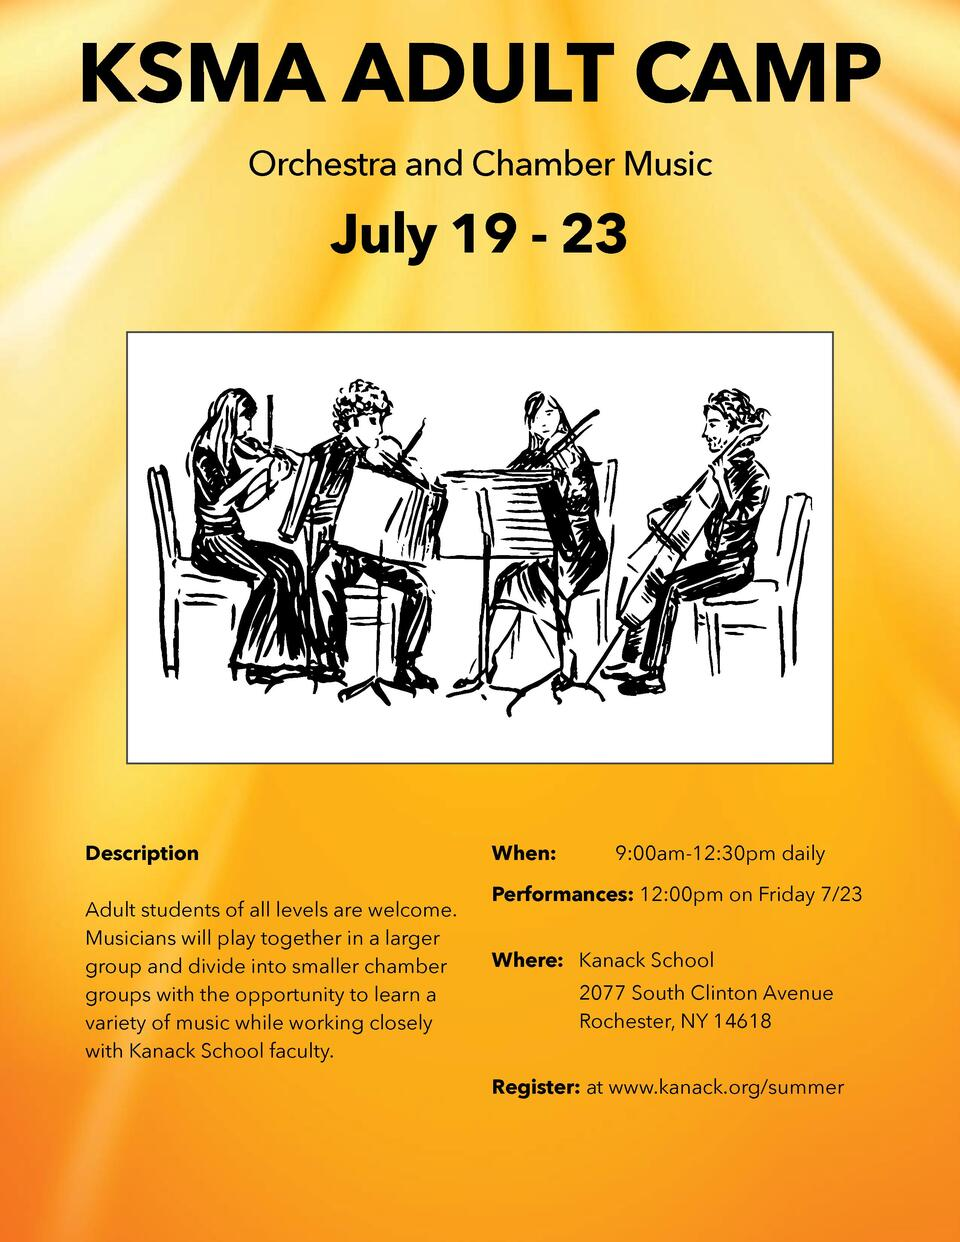 KSMA ADULT CAMP Orchestra and Chamber Music  July 19 - 23  Description Adult students of all levels are welcome. Musicians...